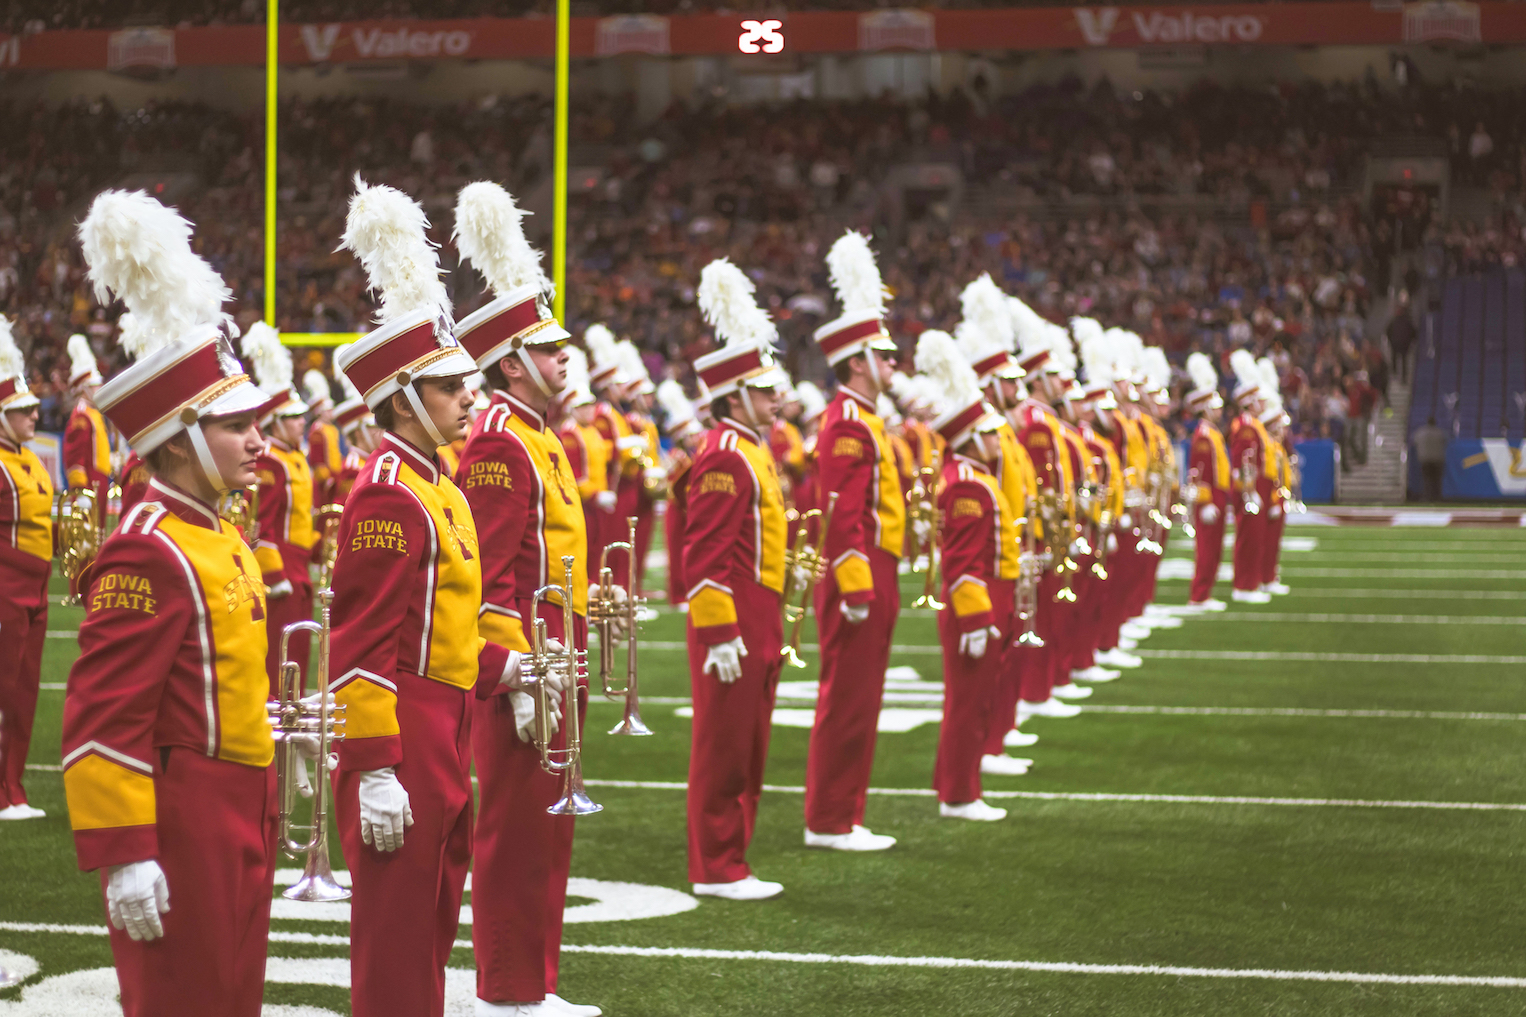 Iowa State Marching Band on the field